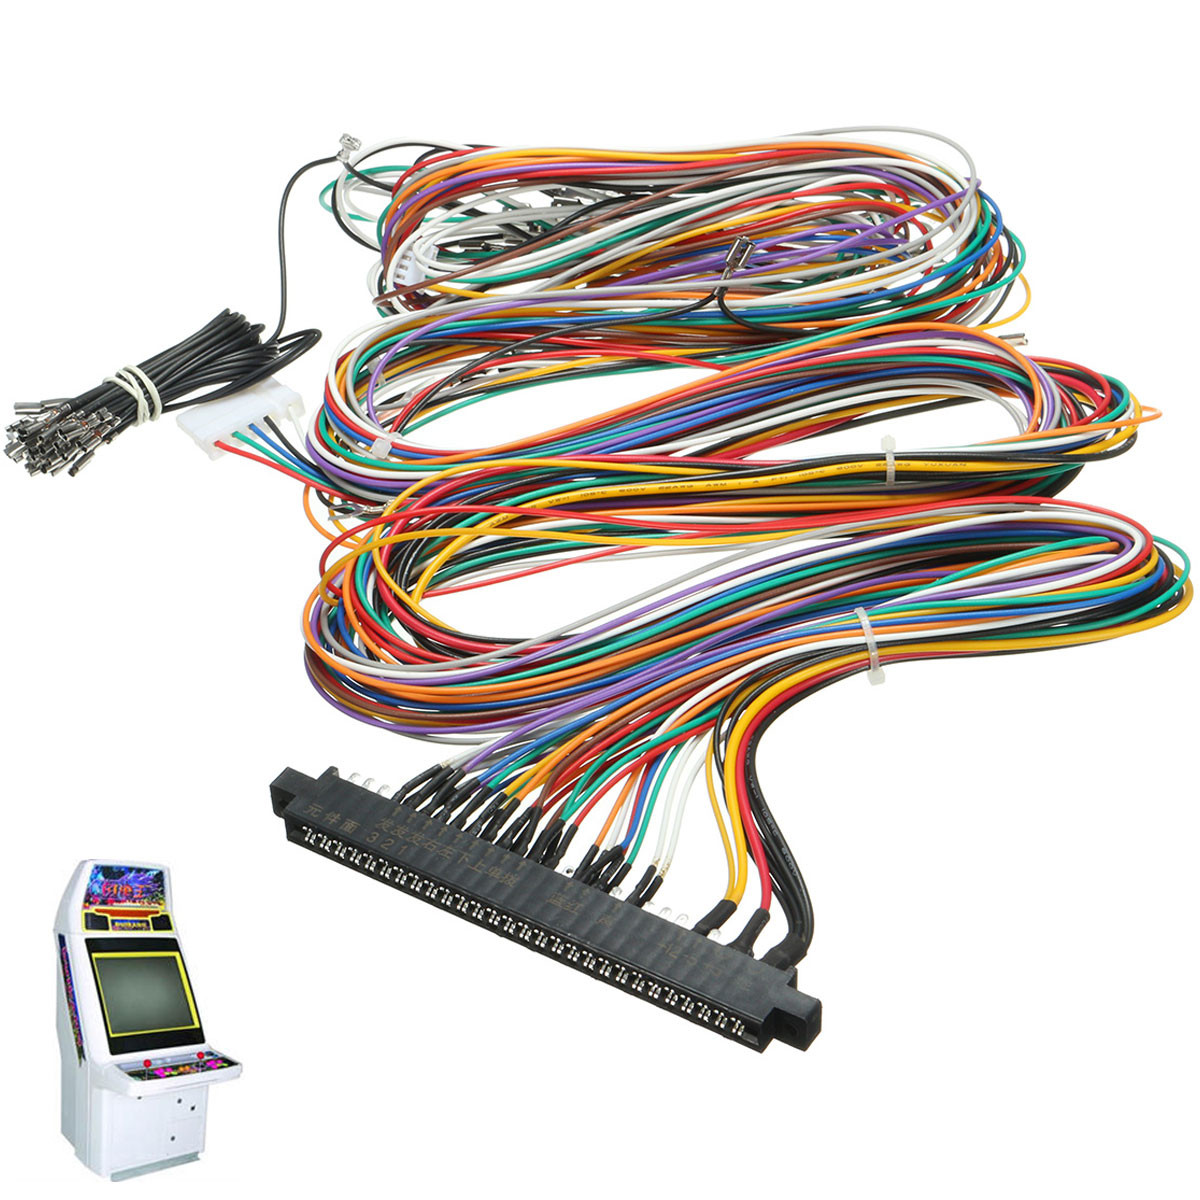 Wiring Harness Cable Replacement Parts Assemble For Arcade Jamma Board Diagram Machine